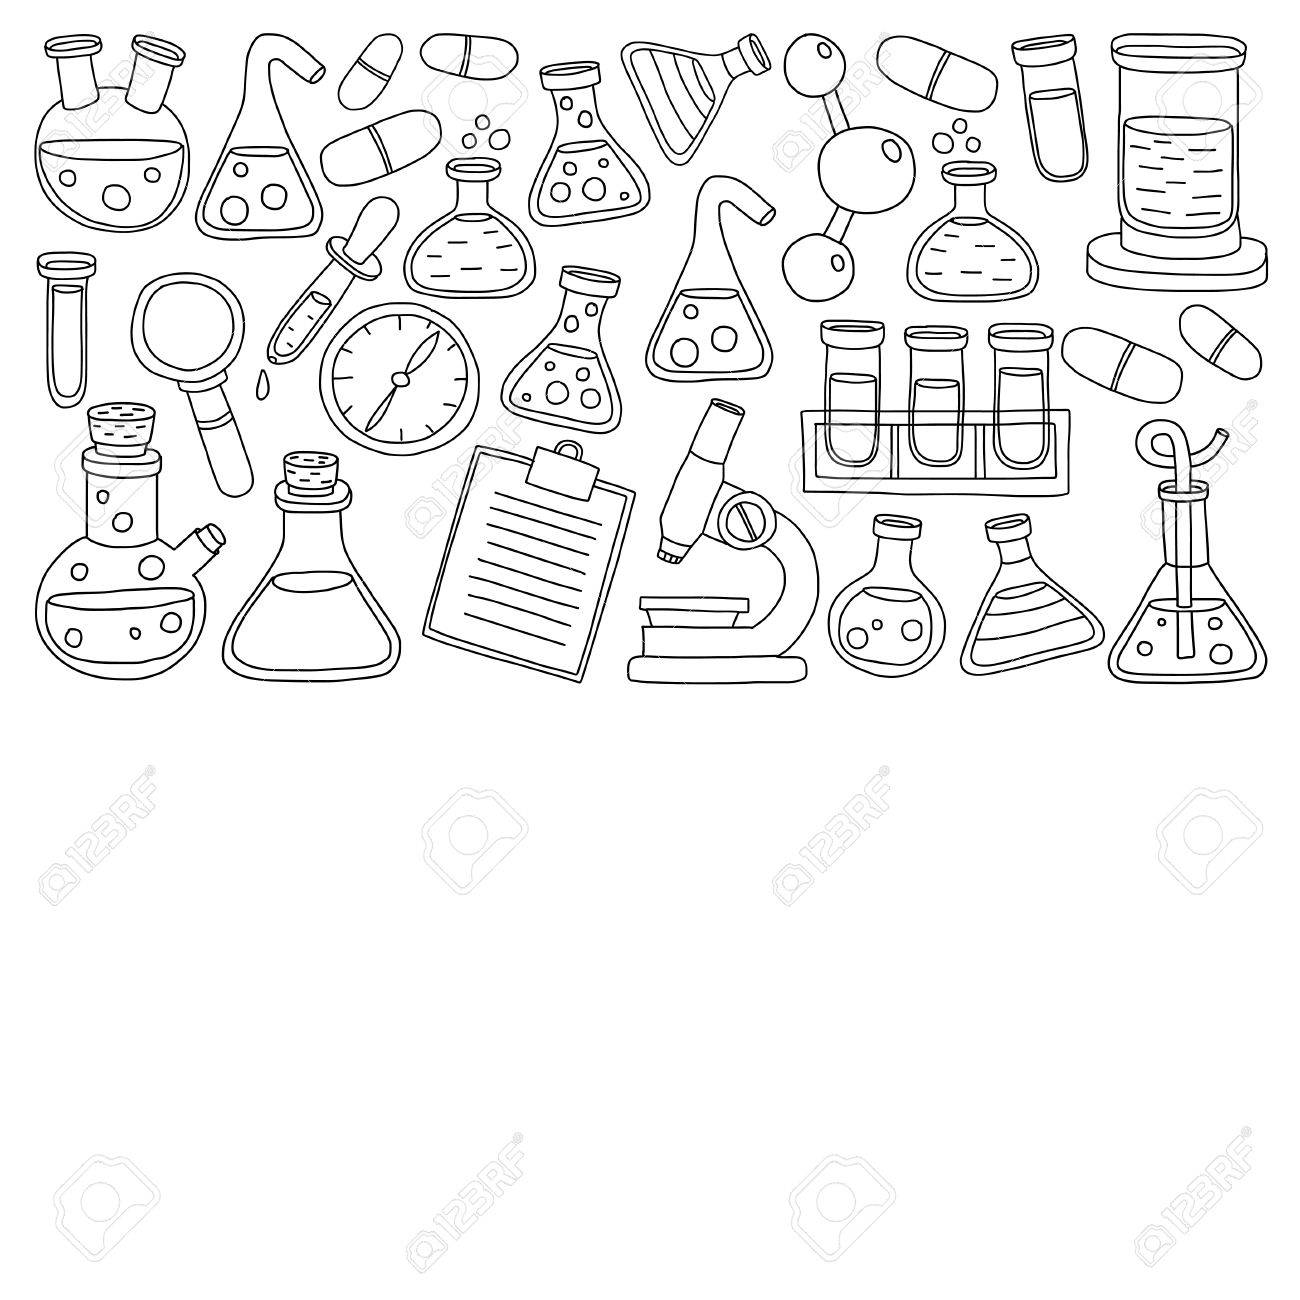 Hand draw chemistry on background riding mower wiring diagram chemistry drawing free 14 hand draw chemistry